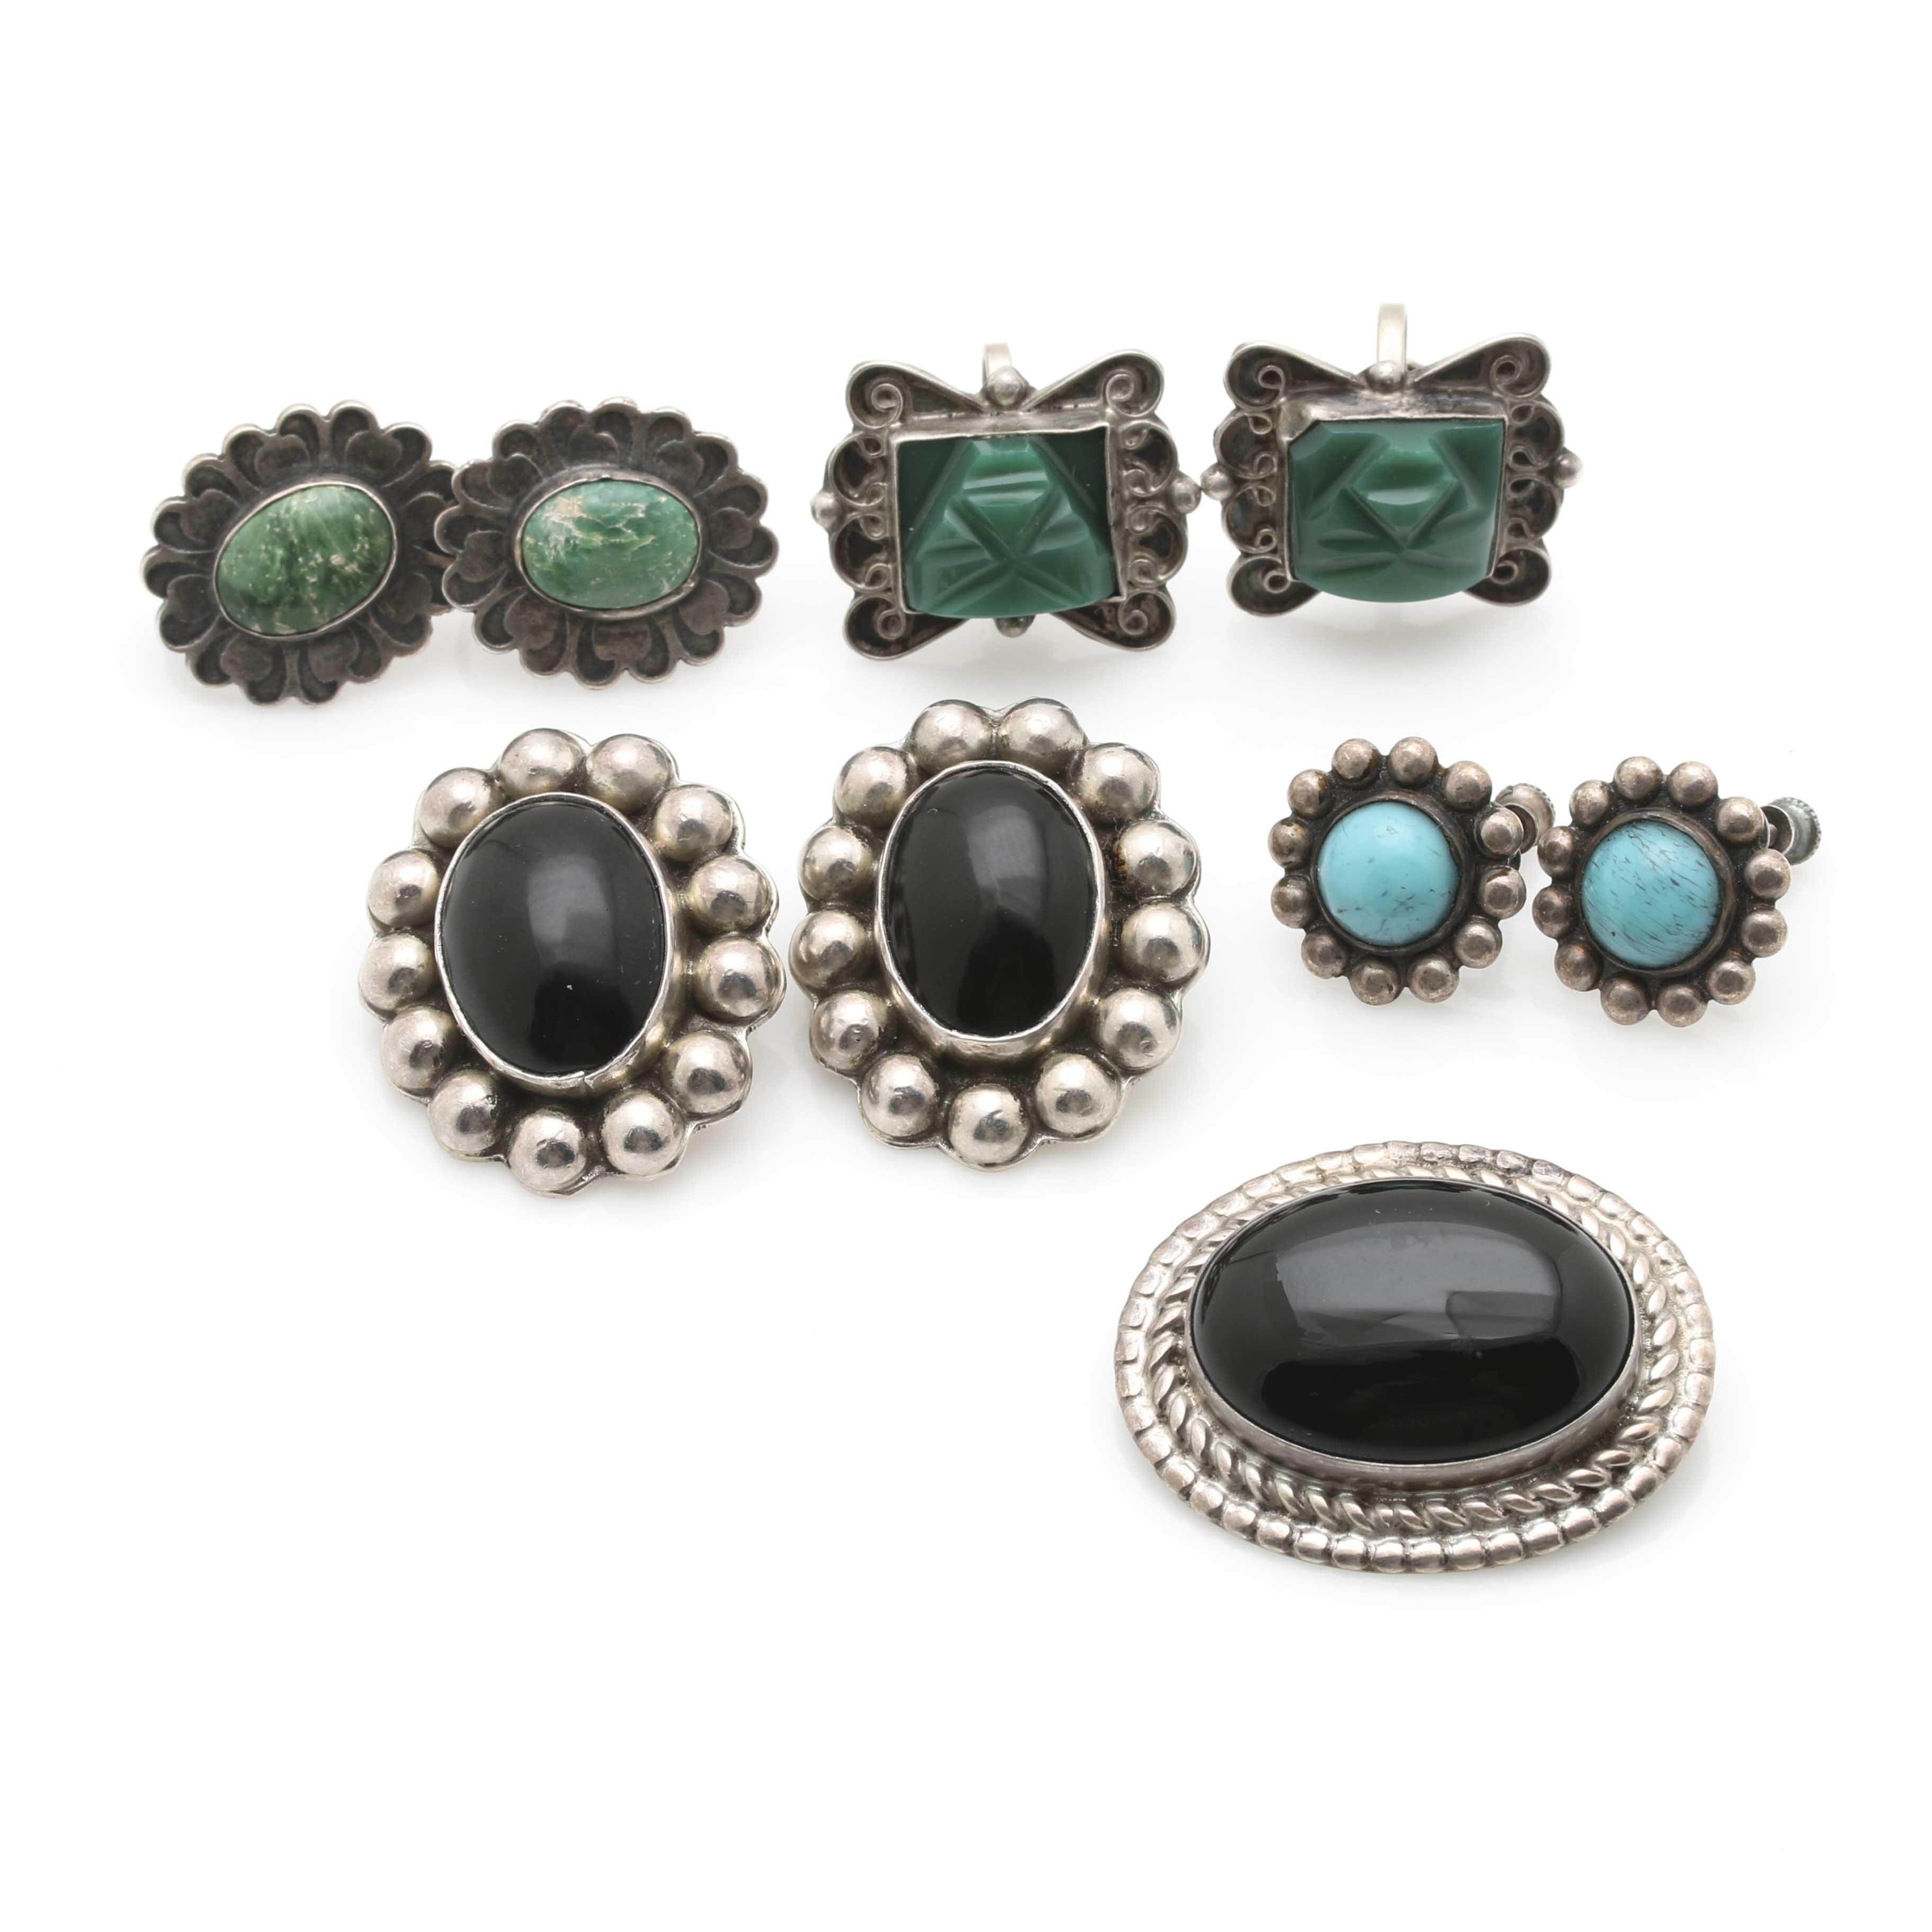 Southwestern Inspired Sterling Silver and Gemstone Jewelry